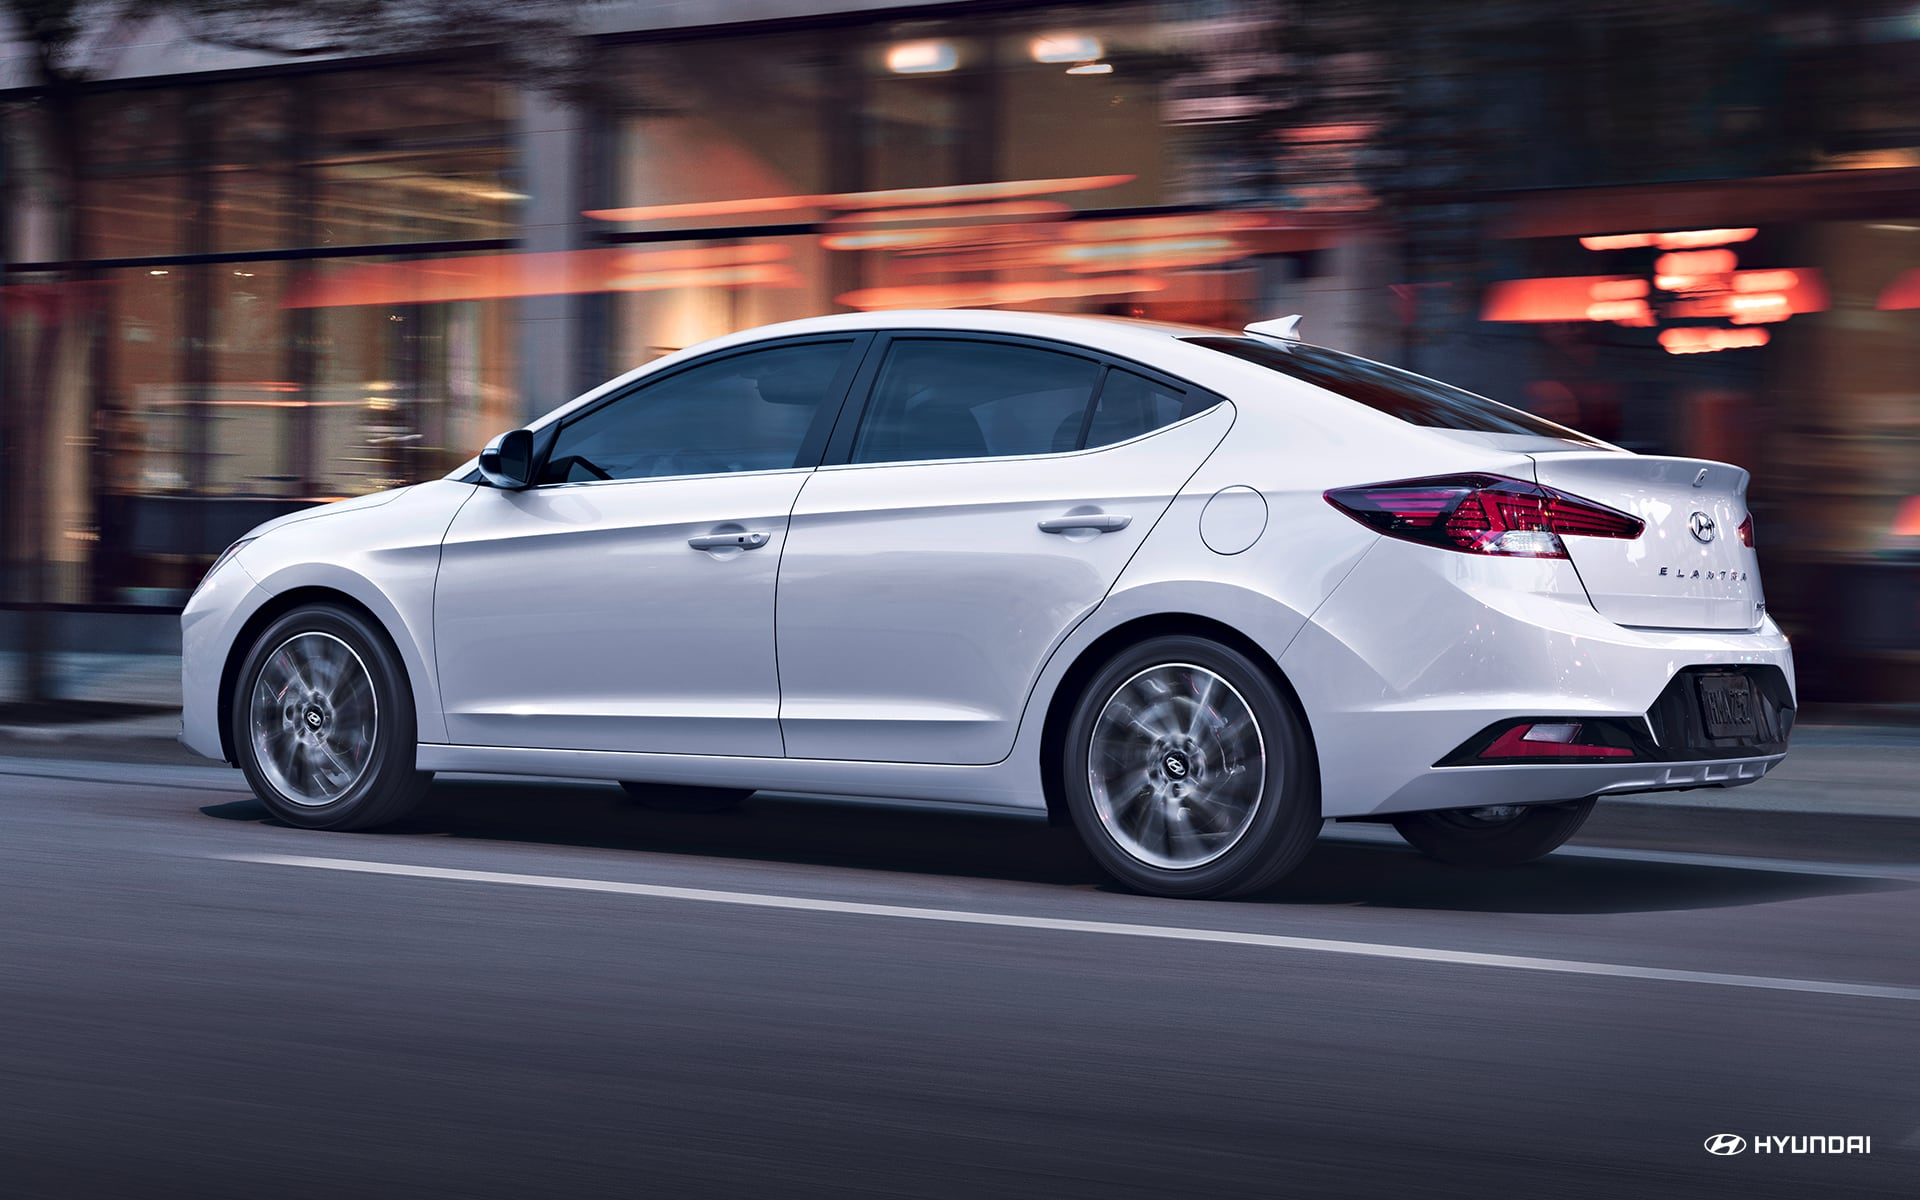 Shop for a Safe 2020 Hyundai Model at Hyundai of Moreno Valley